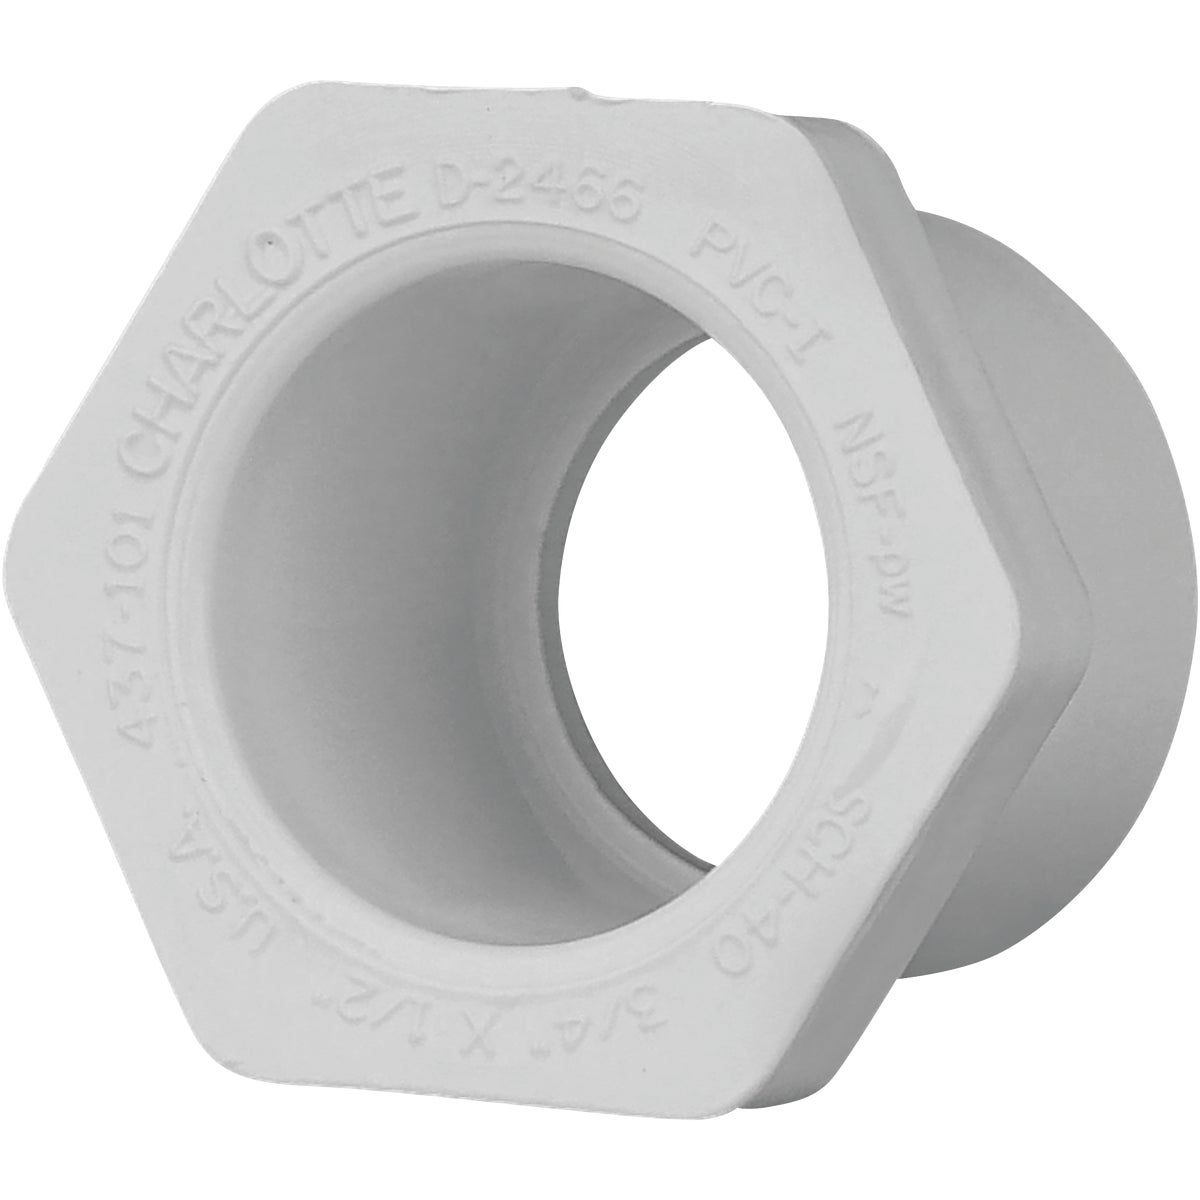 3/4X1/2 PVC SPXS BUSHING - 30275 by Genova Inc